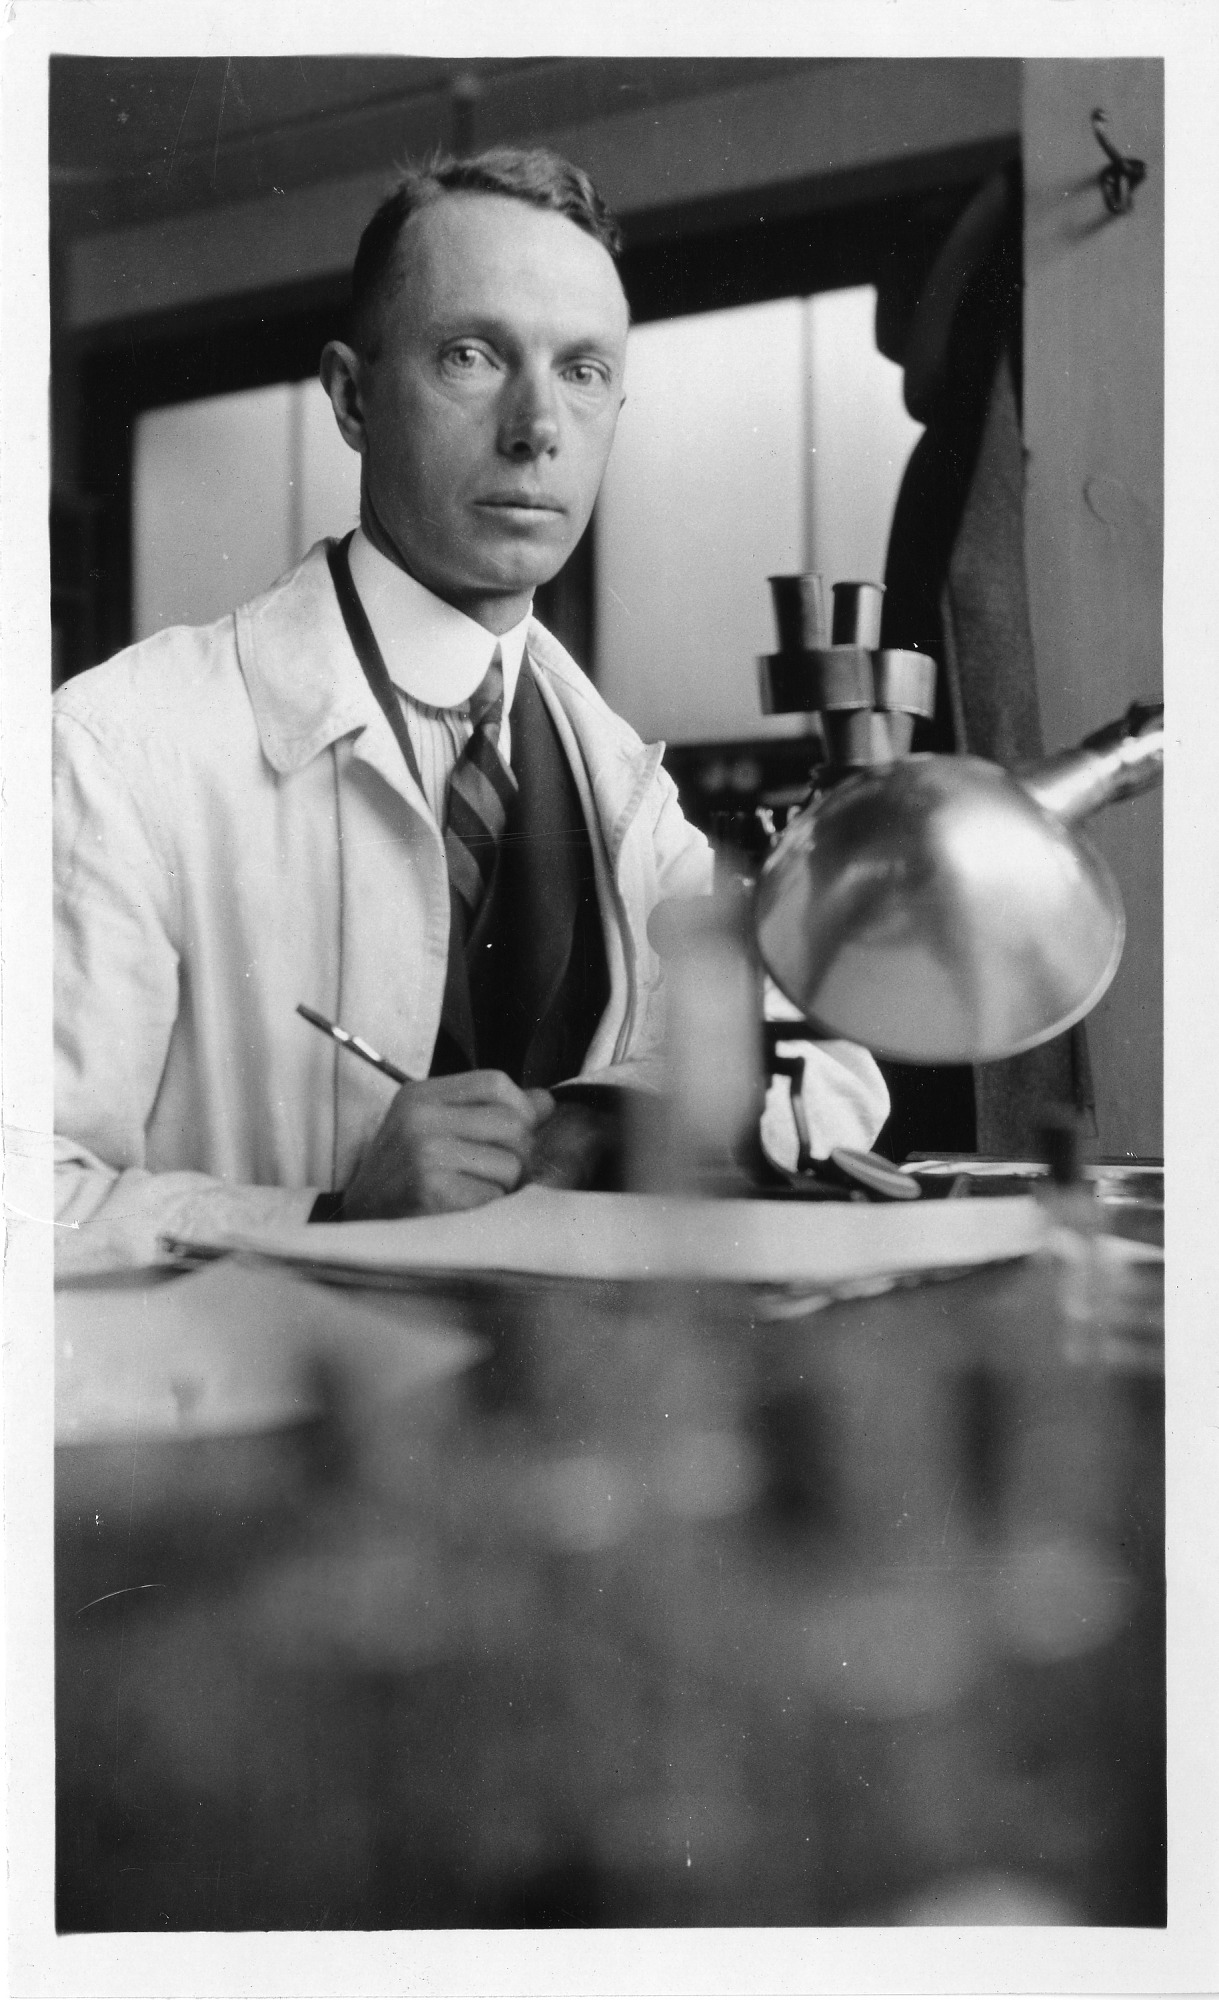 Wilbert Amie Clemens (1887-1964), Smithsonian Institution Archives, SIA Acc. 90-105 [SIA2008-0147].